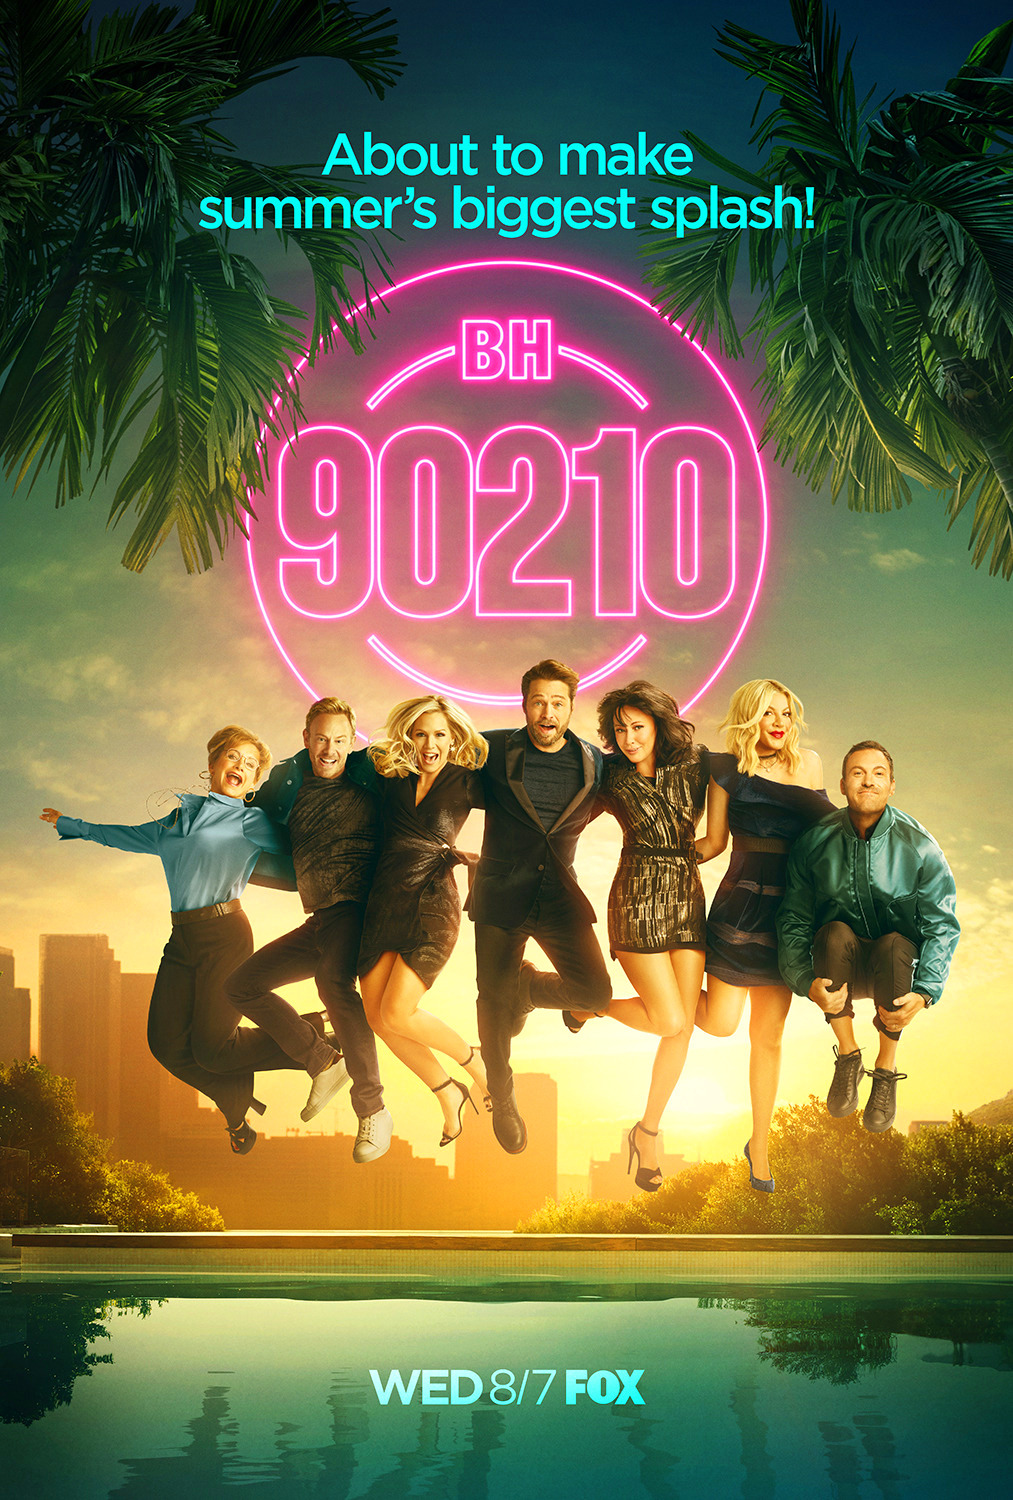 BH90210 (TV Series 2019– ) - IMDb